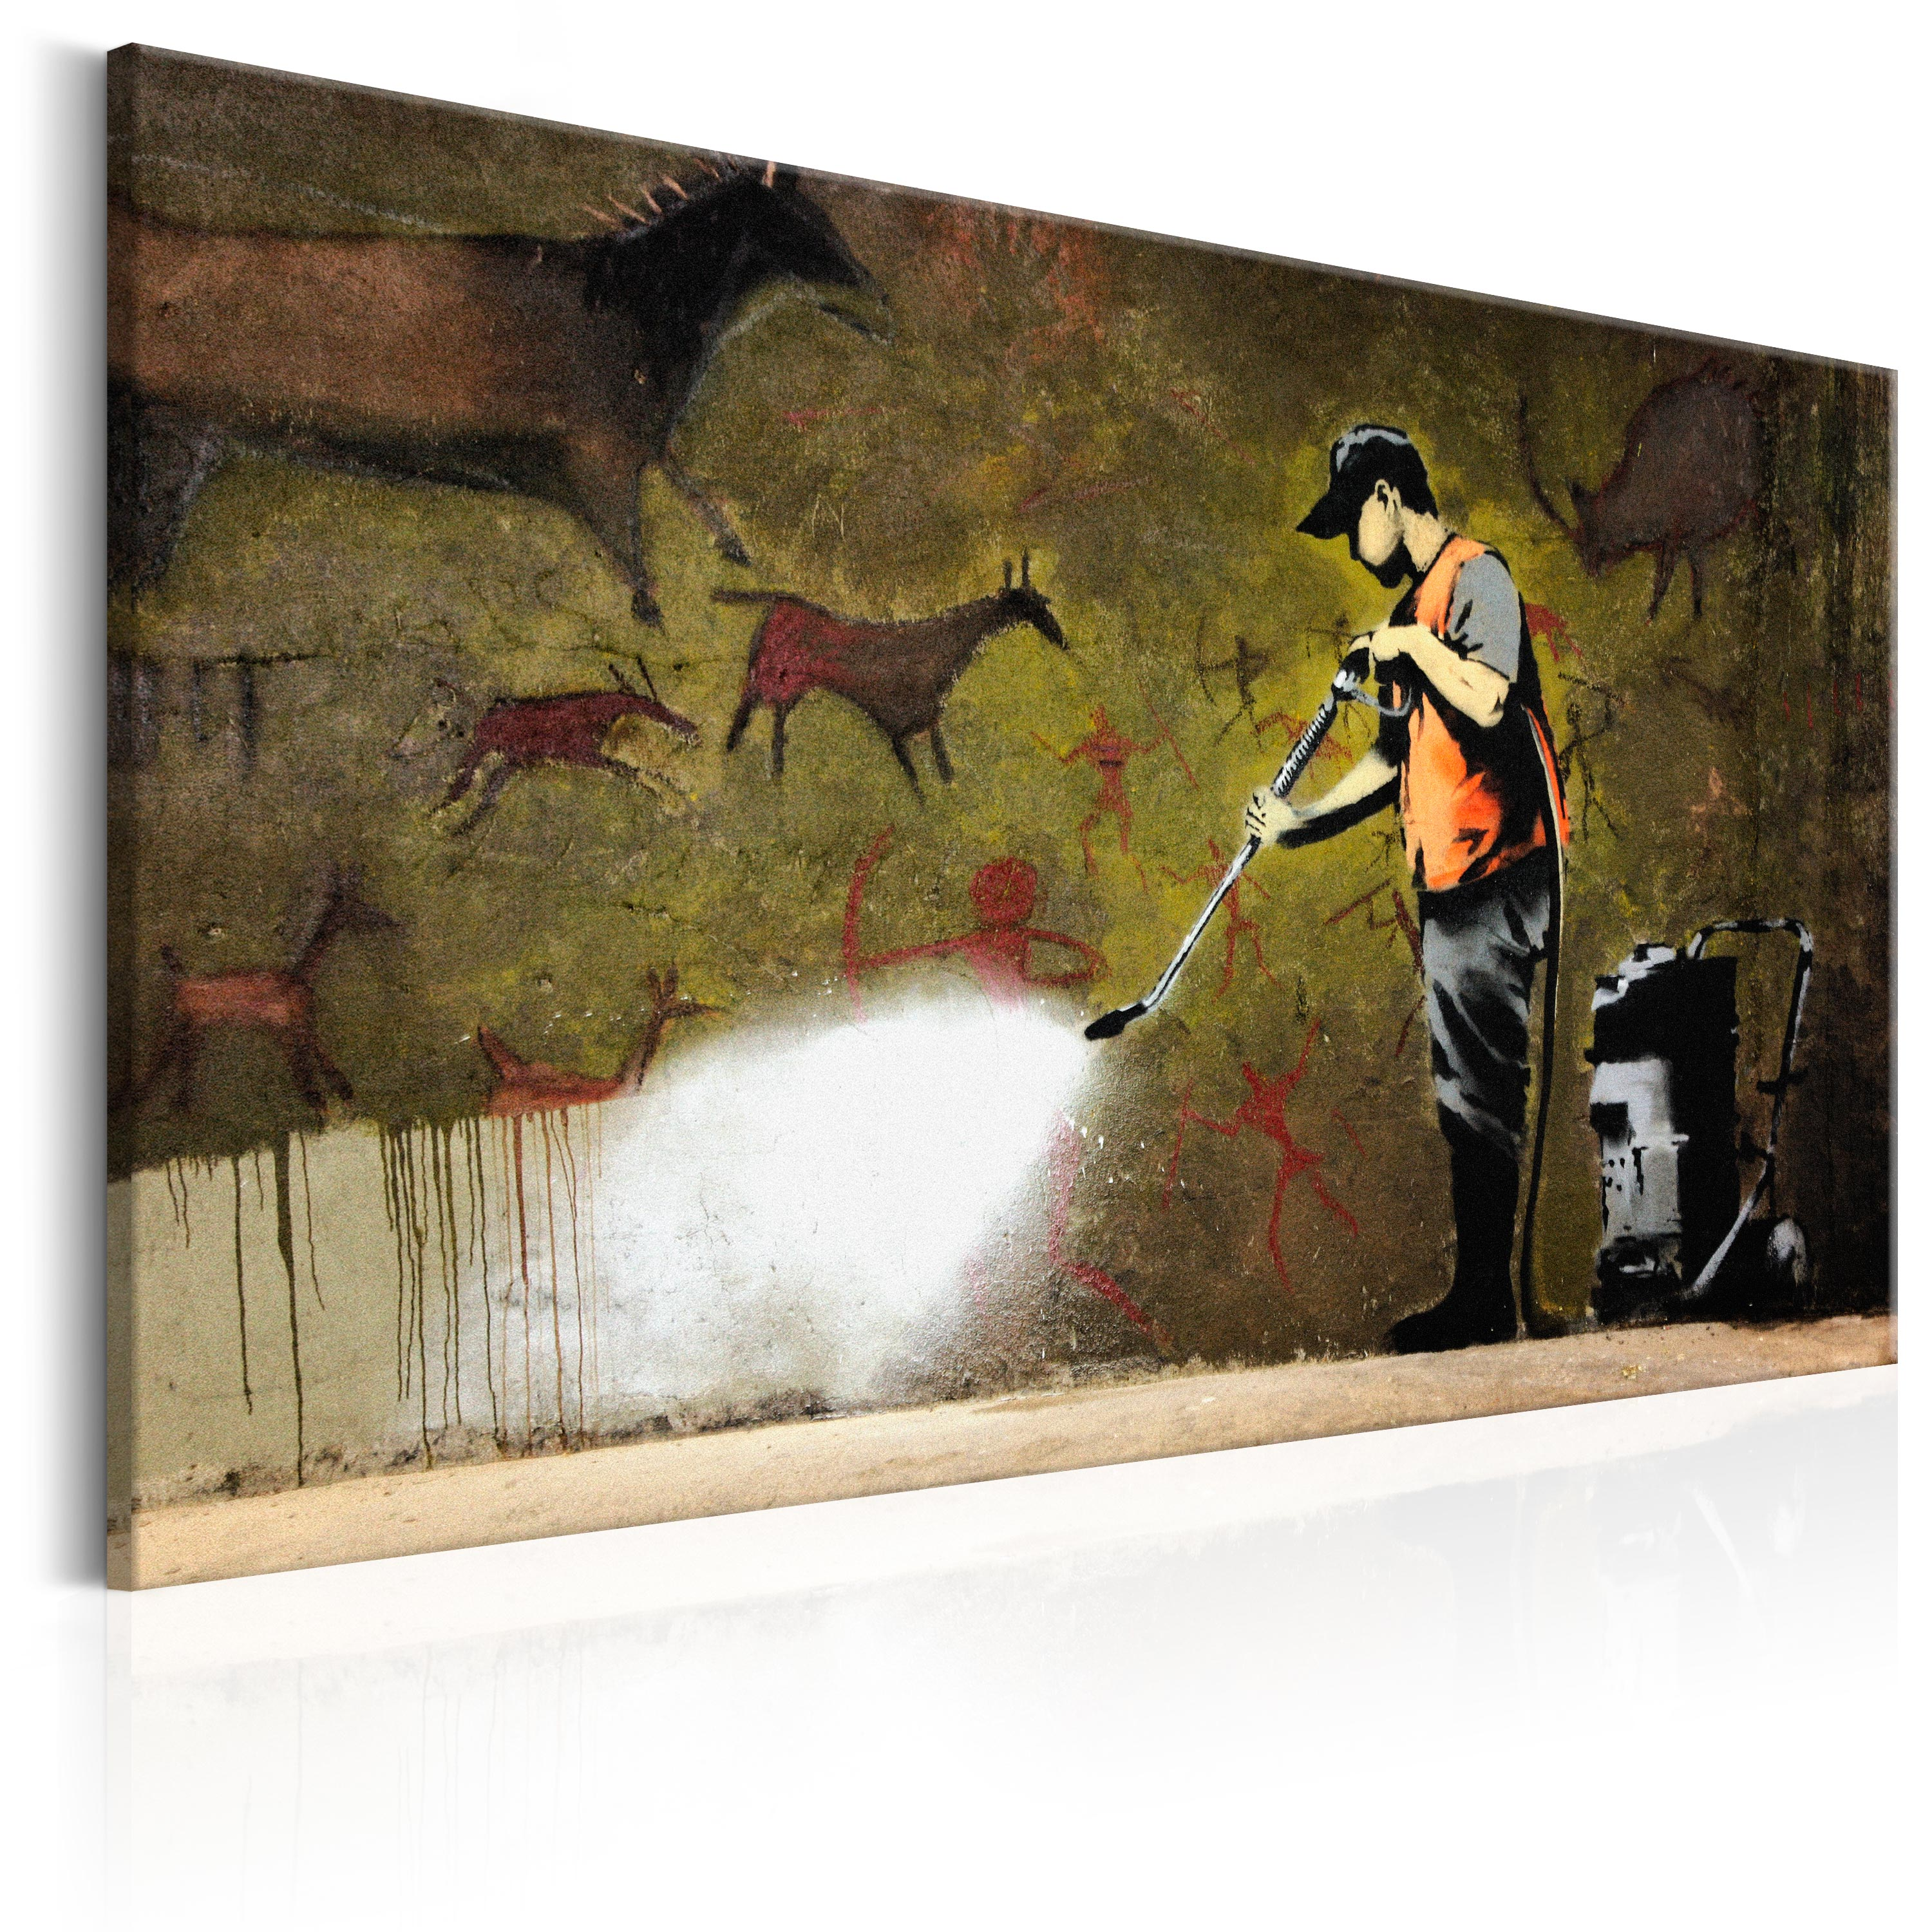 Obraz - Cave Painting by Banksy 60x40